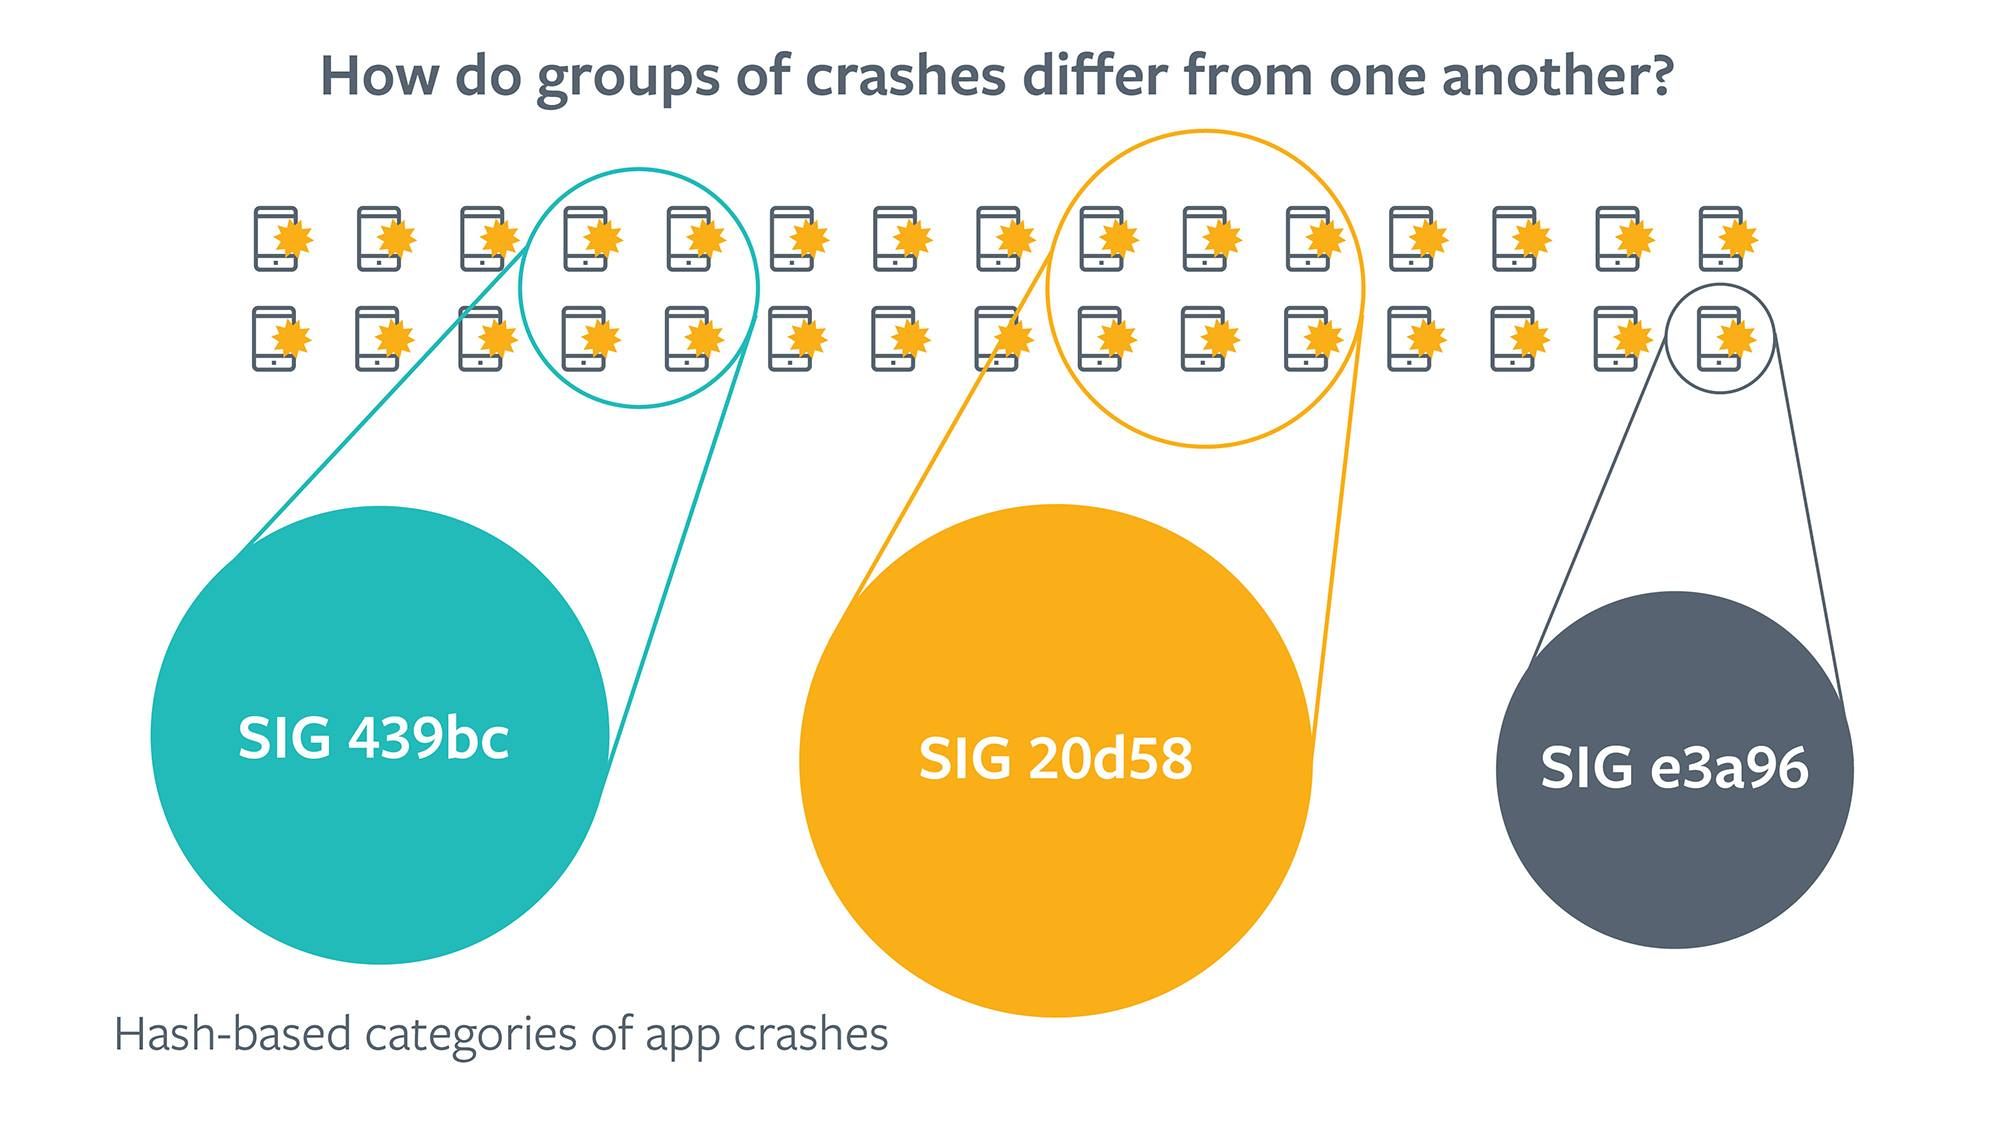 hash-based categories of app crashes